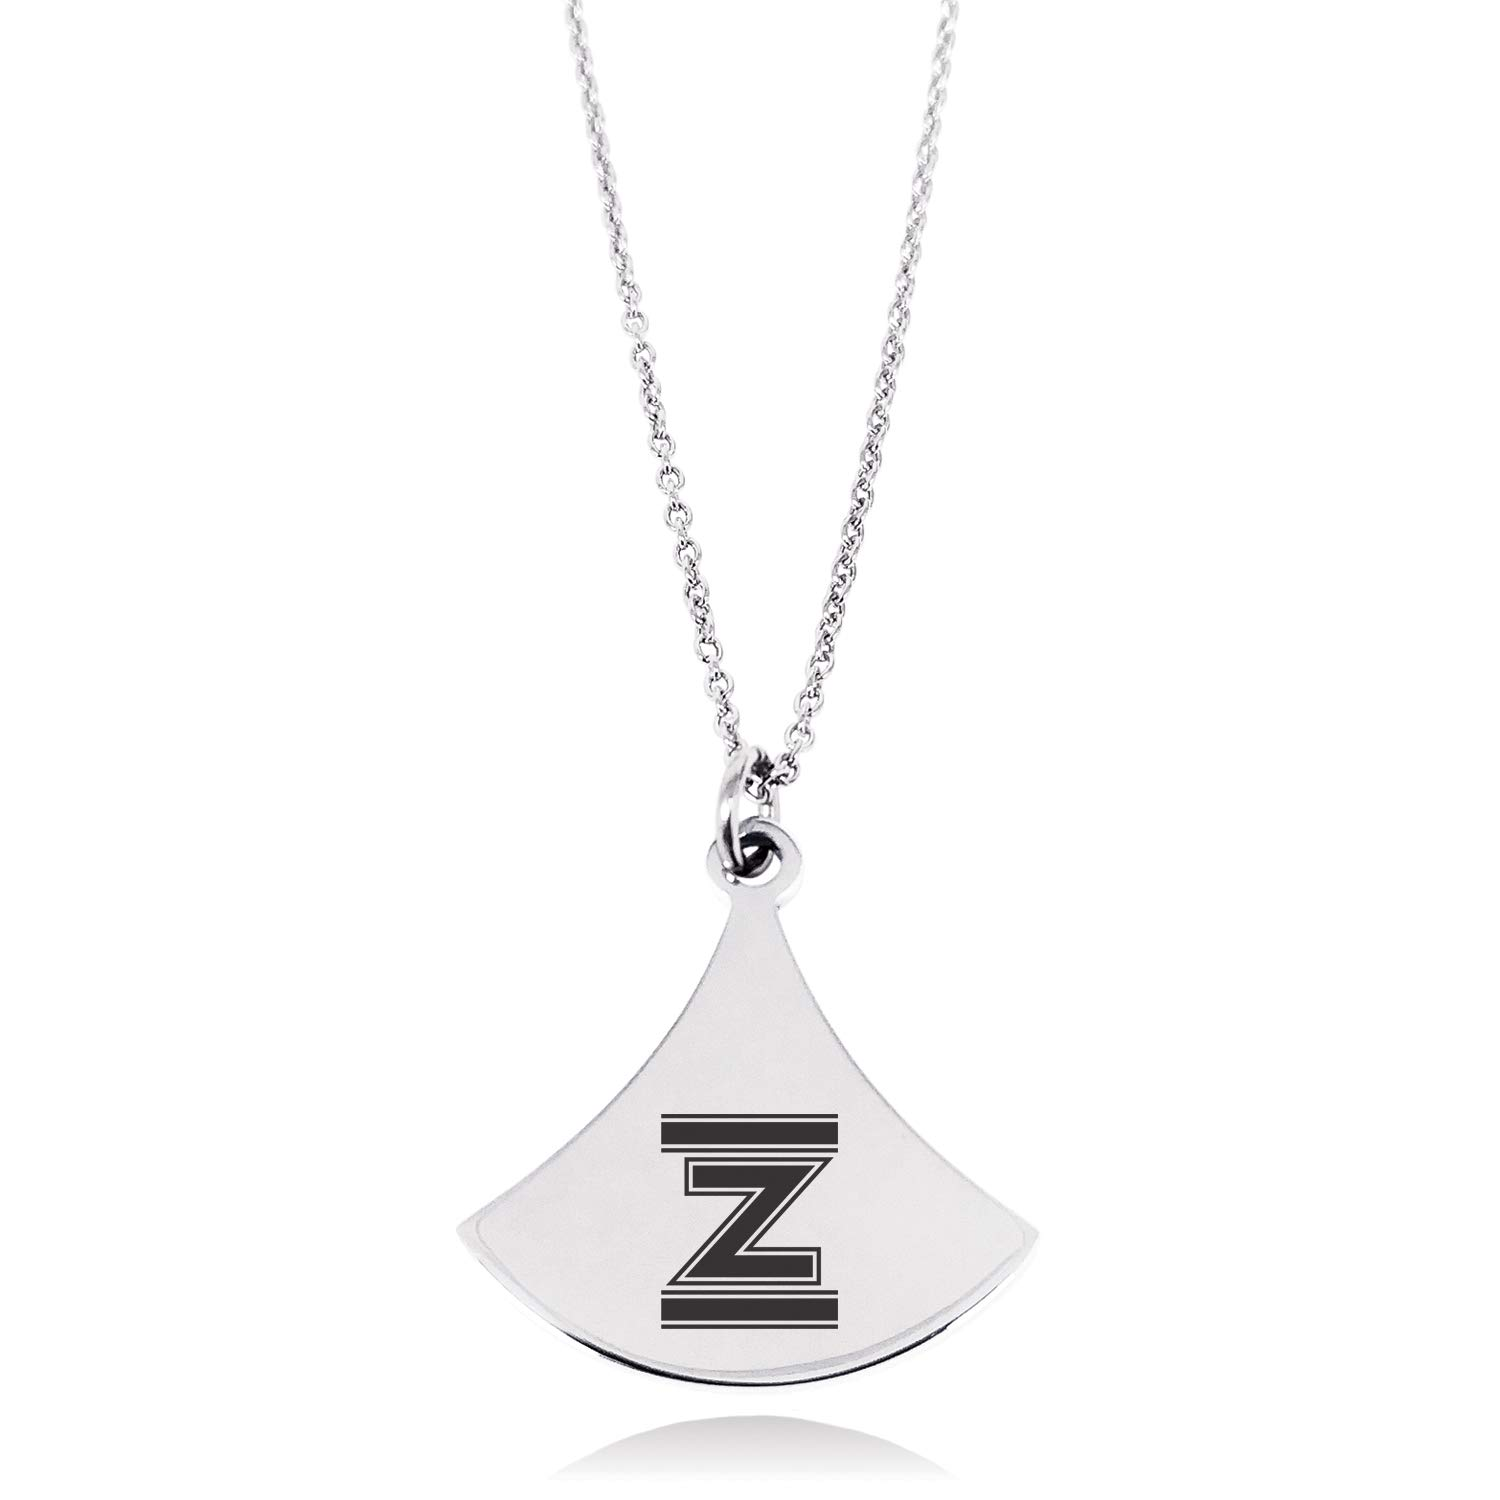 Stainless Steel Letter Z Initial Empire Monogram Pendulum Curved Triangle Charm Pendant Necklace